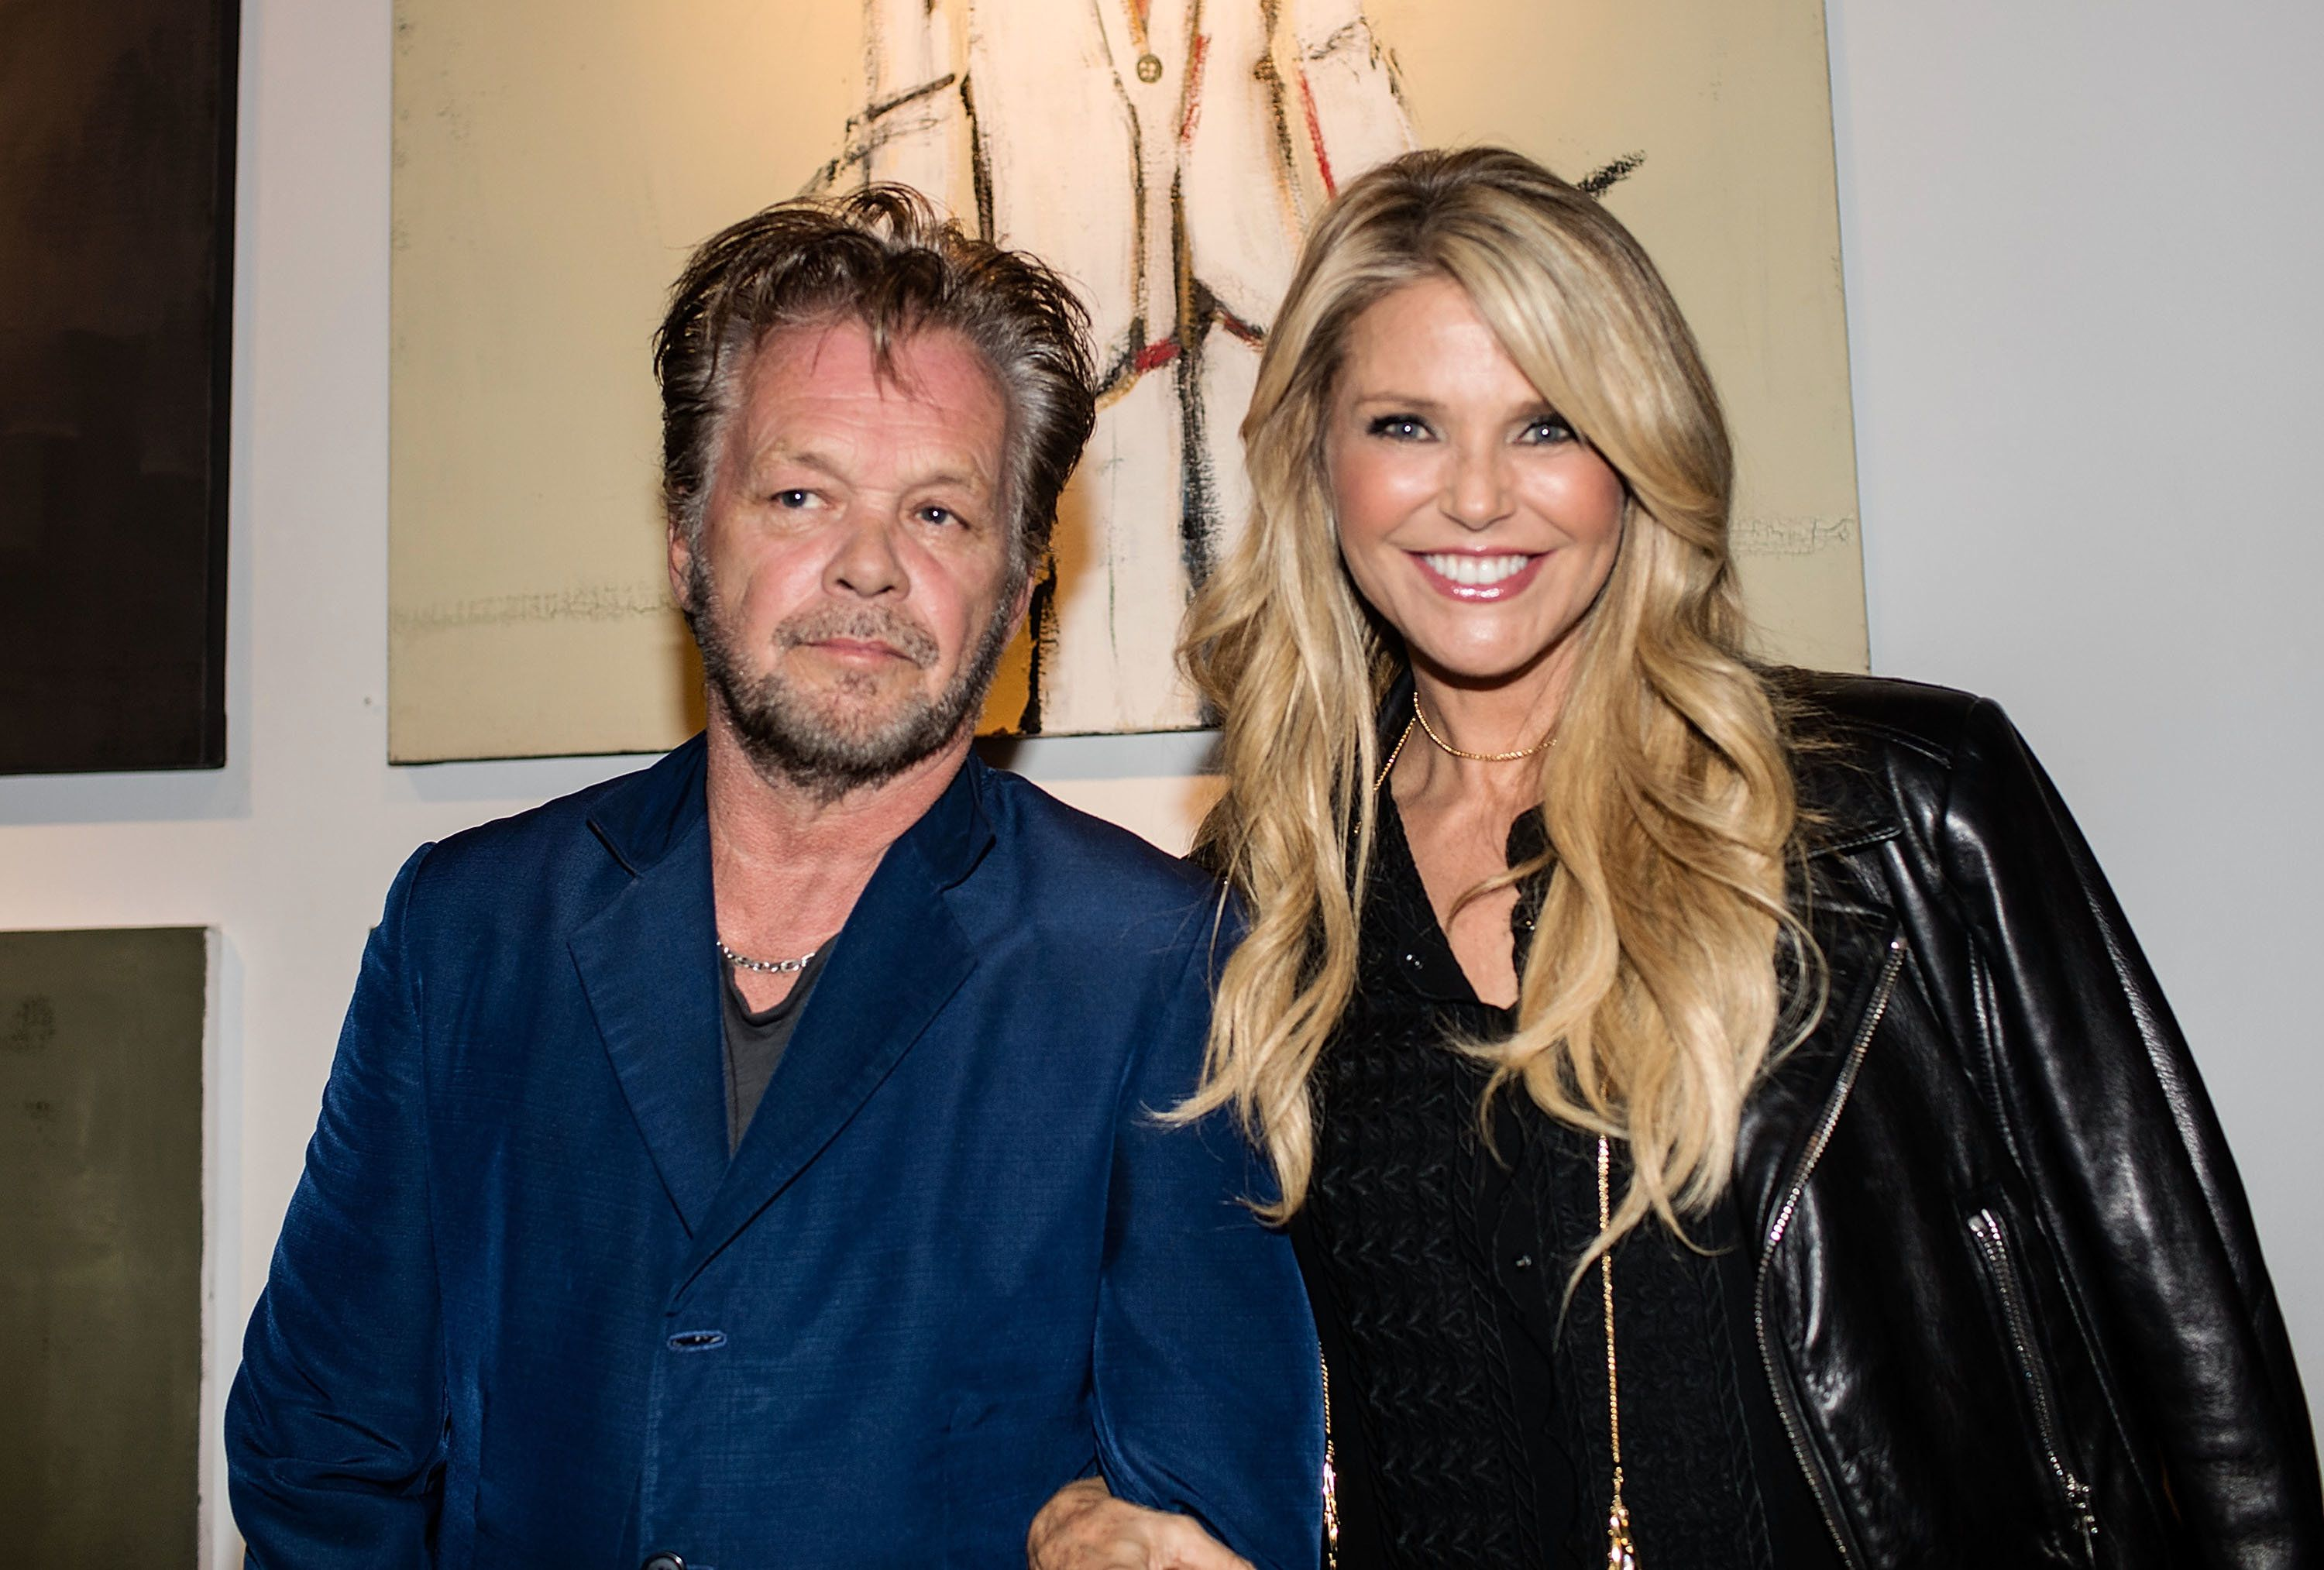 Christie Brinkley and John Mellencamp = proof that opposites attract.